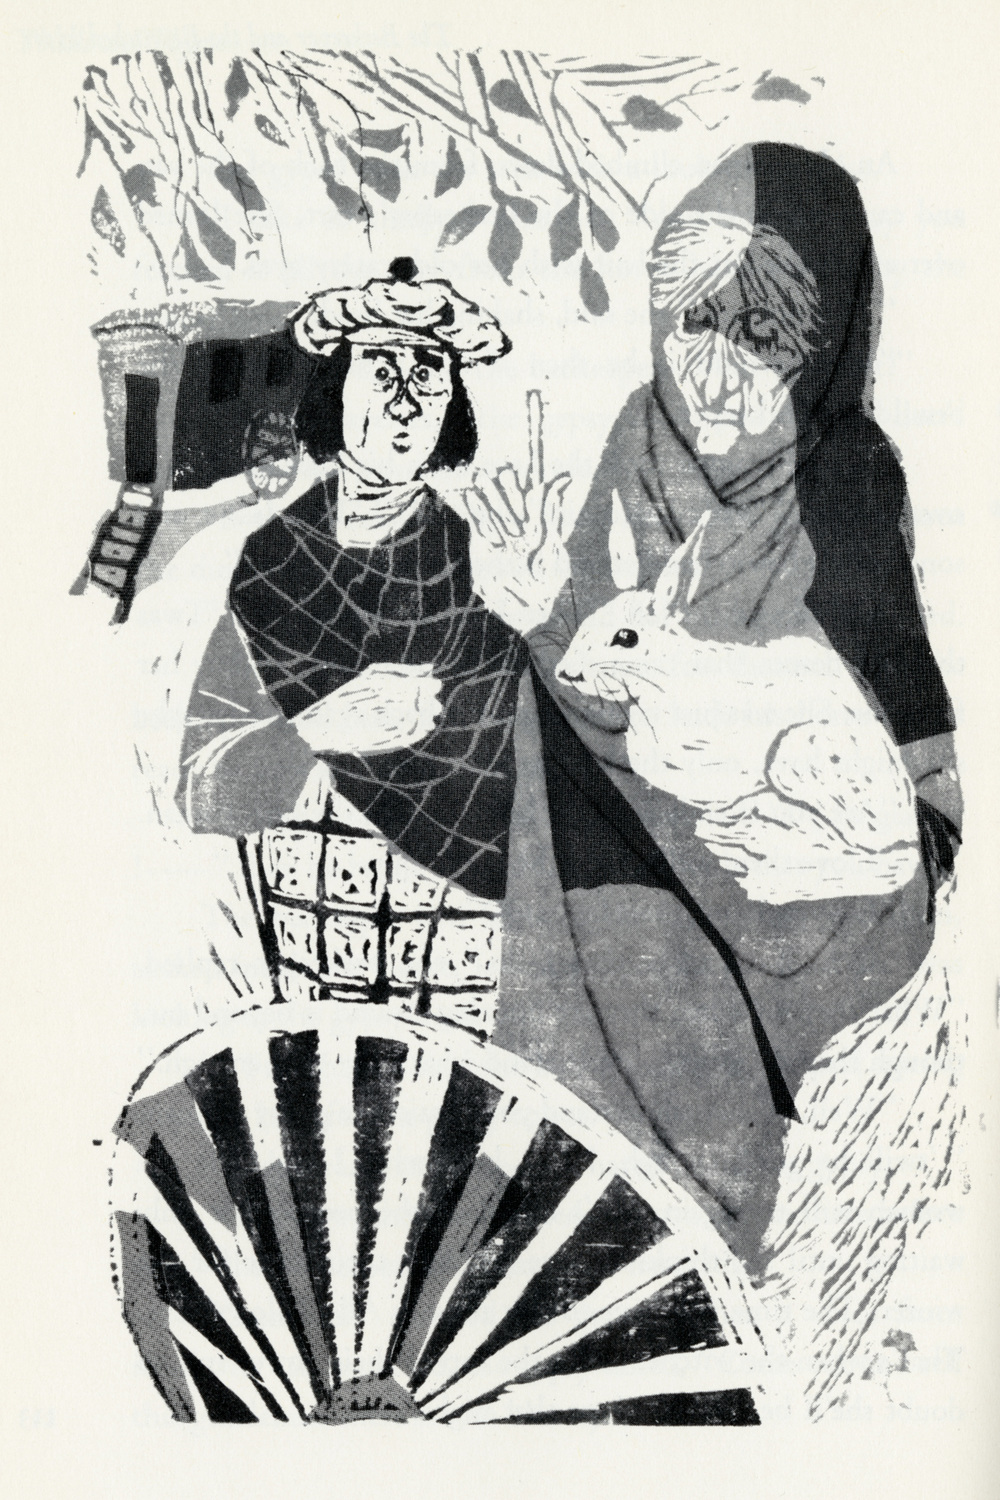 Evaline Ness, illustration from Thistle and Thyme: Tales and Legends from Scotland.